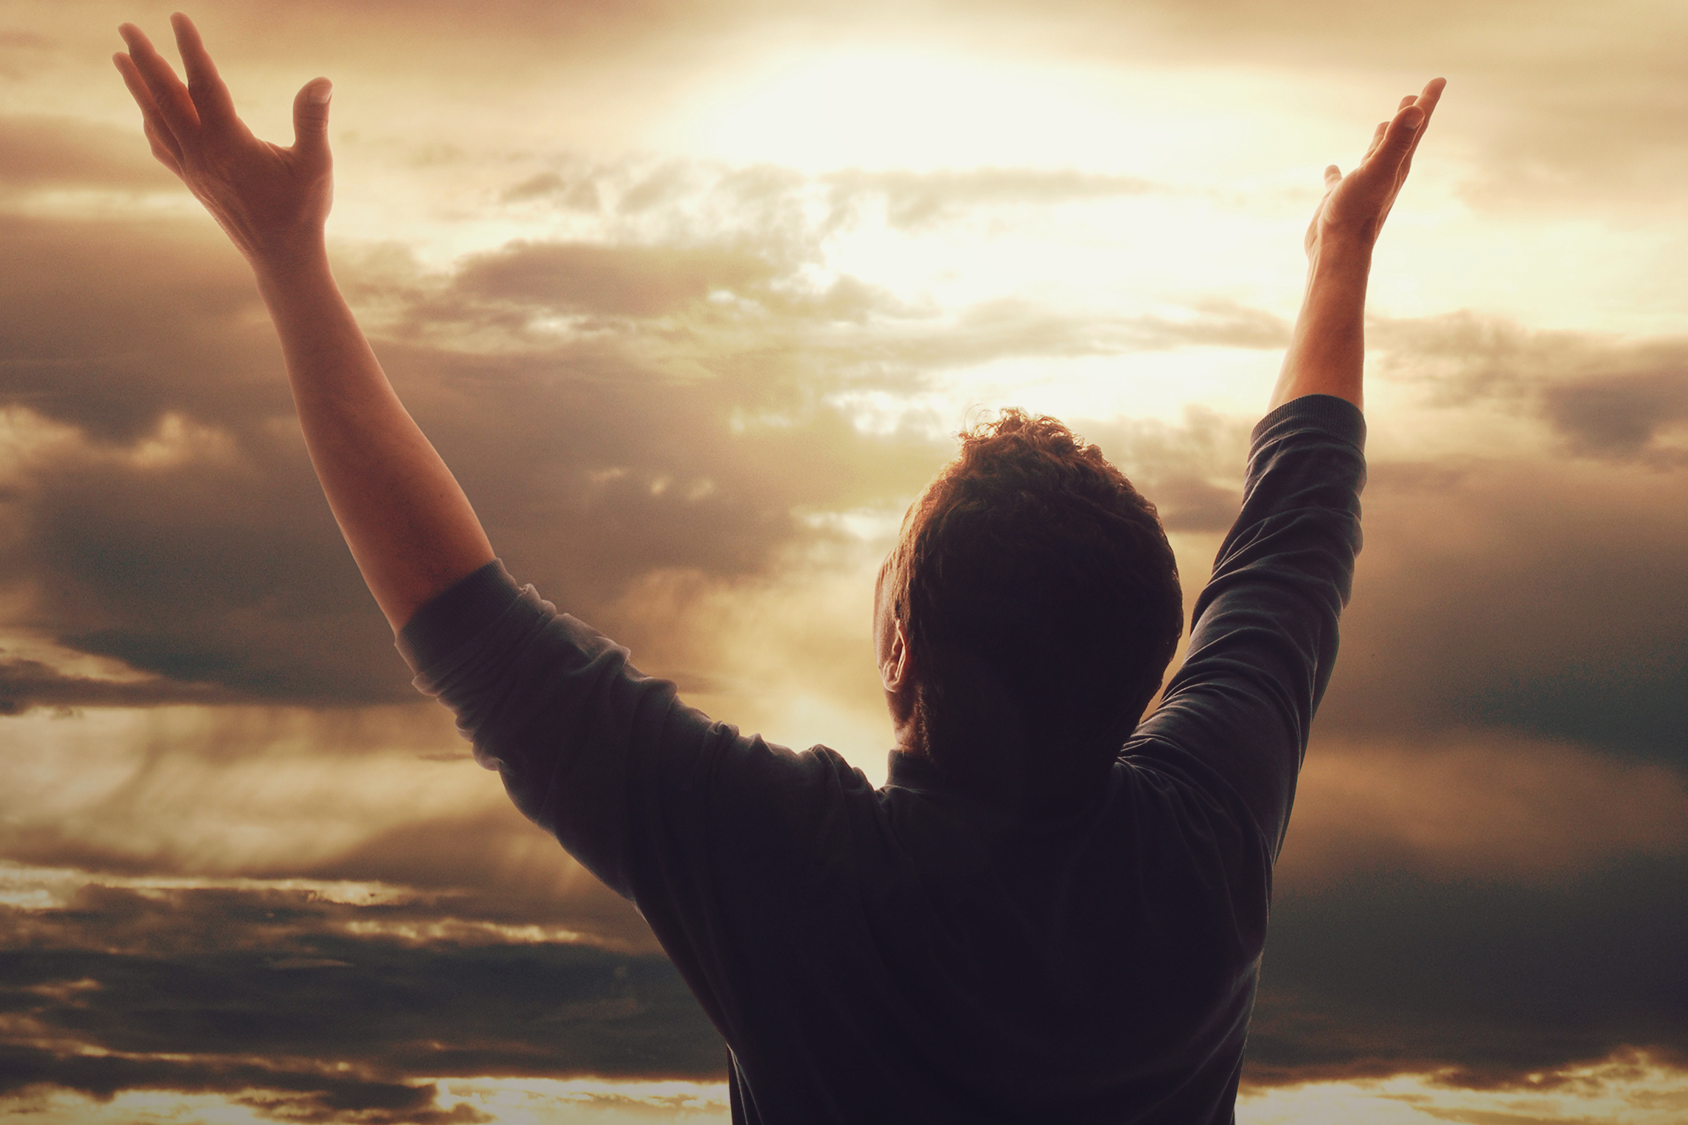 praise your way in victory